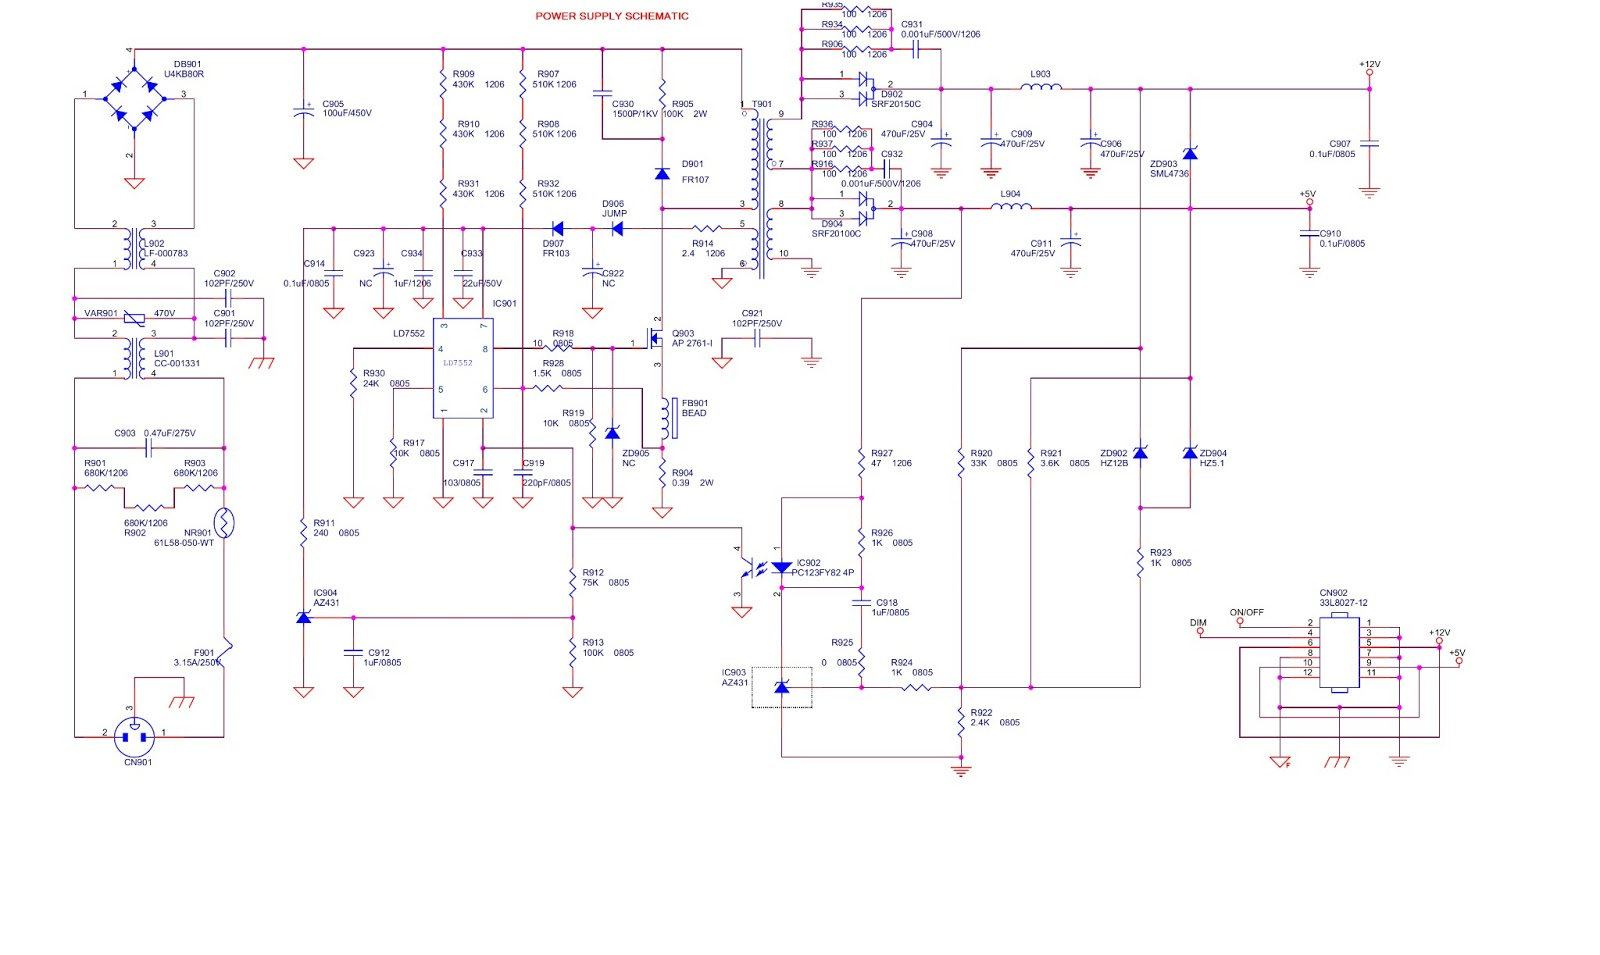 small resolution of tv schematic circuit diagram further hp power supply pinout further wiring diagram as well pump alternating relay diagram further fiat